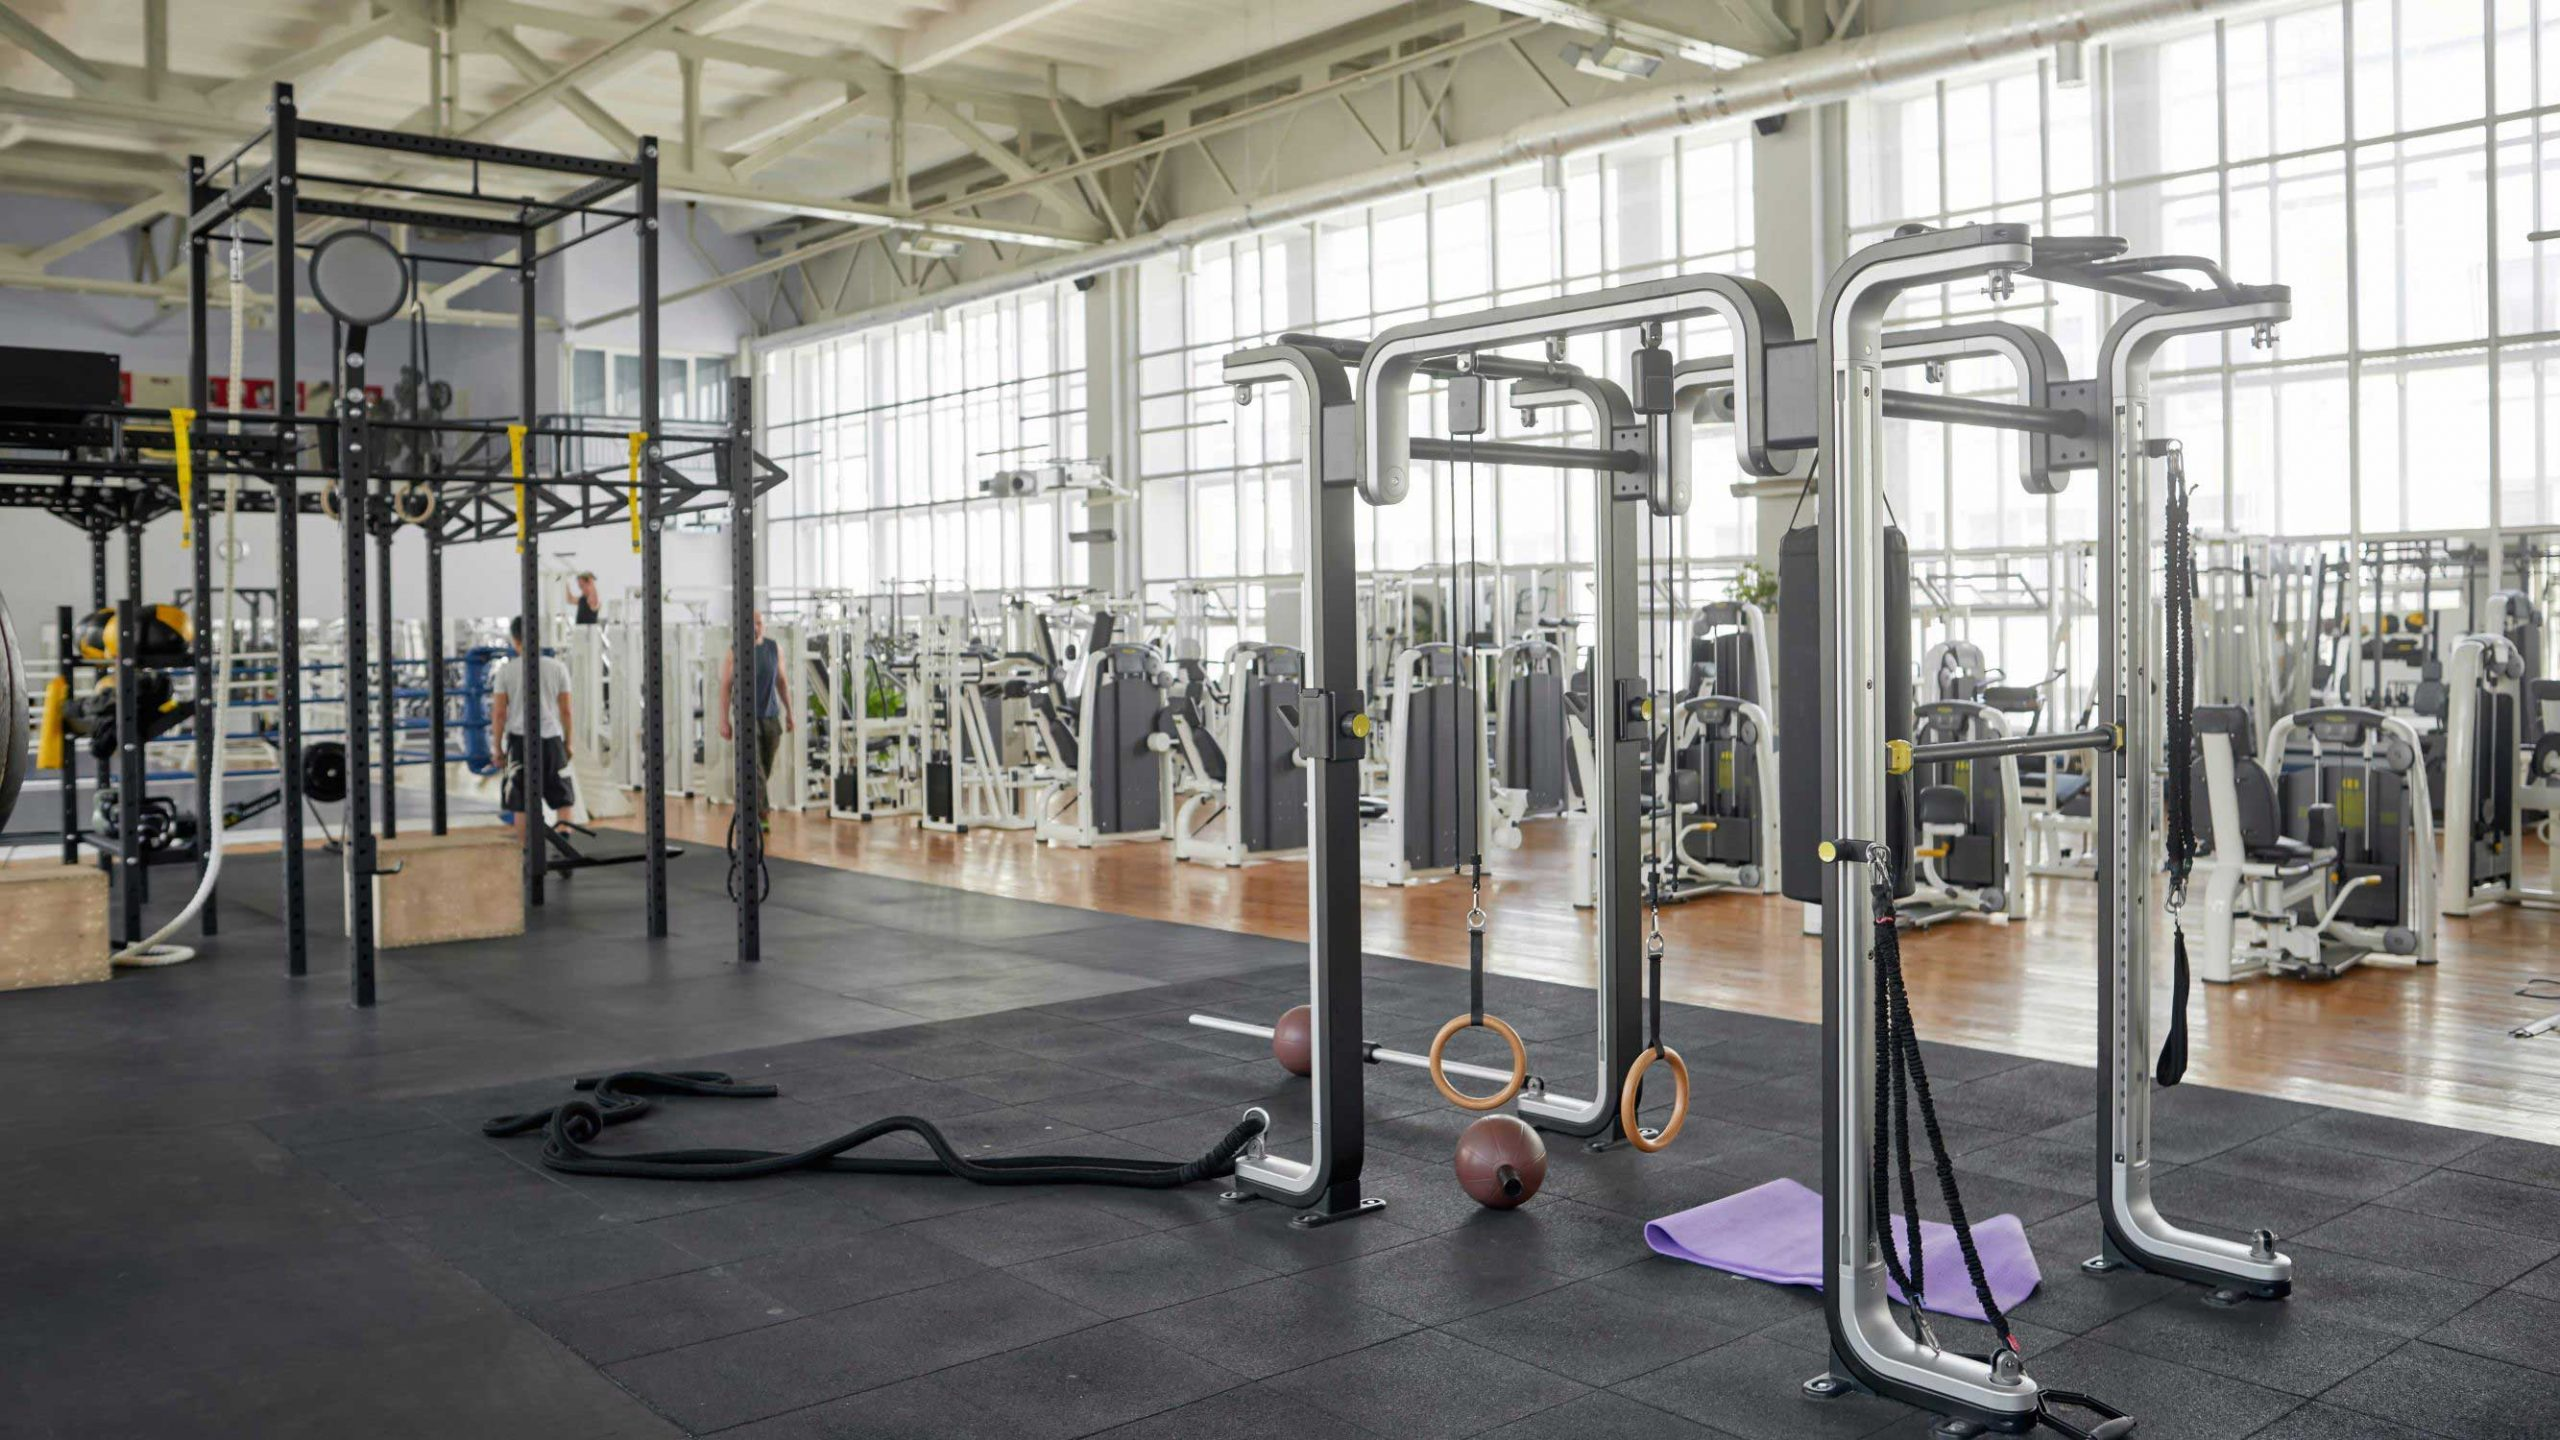 How to Get Clean Gym Floors